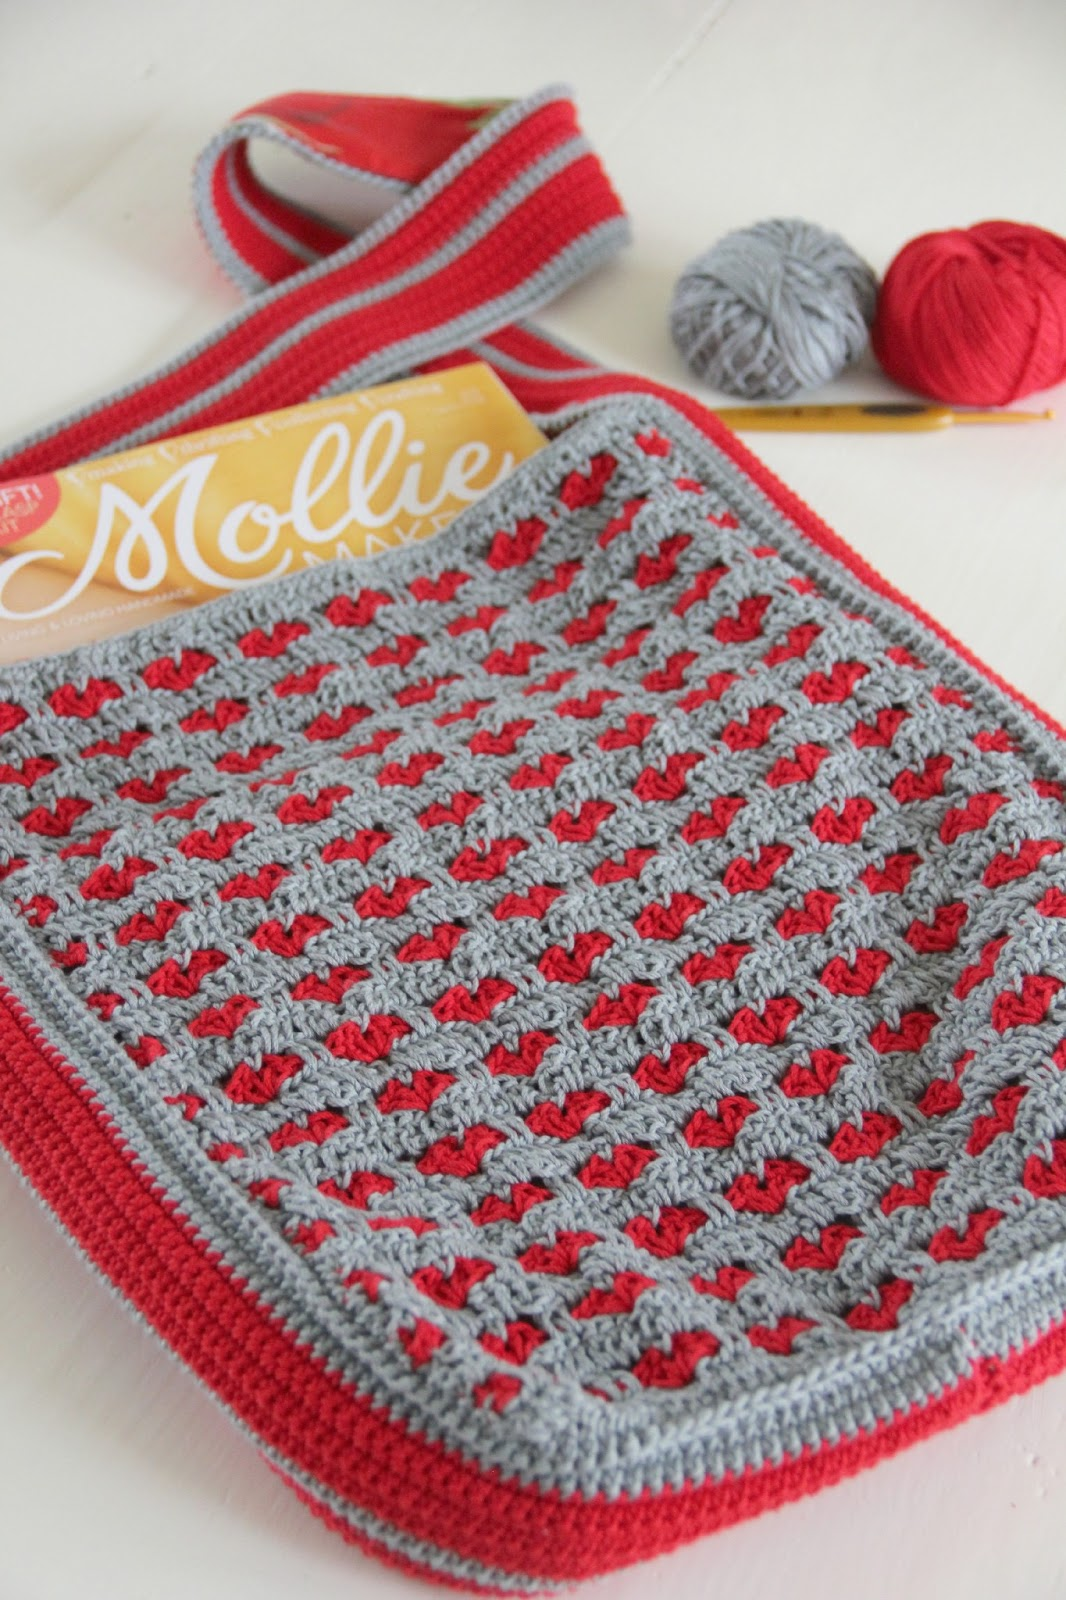 Crochet Bag Tutorial : the heartfelt company: Crochet bag with hearts tutorial